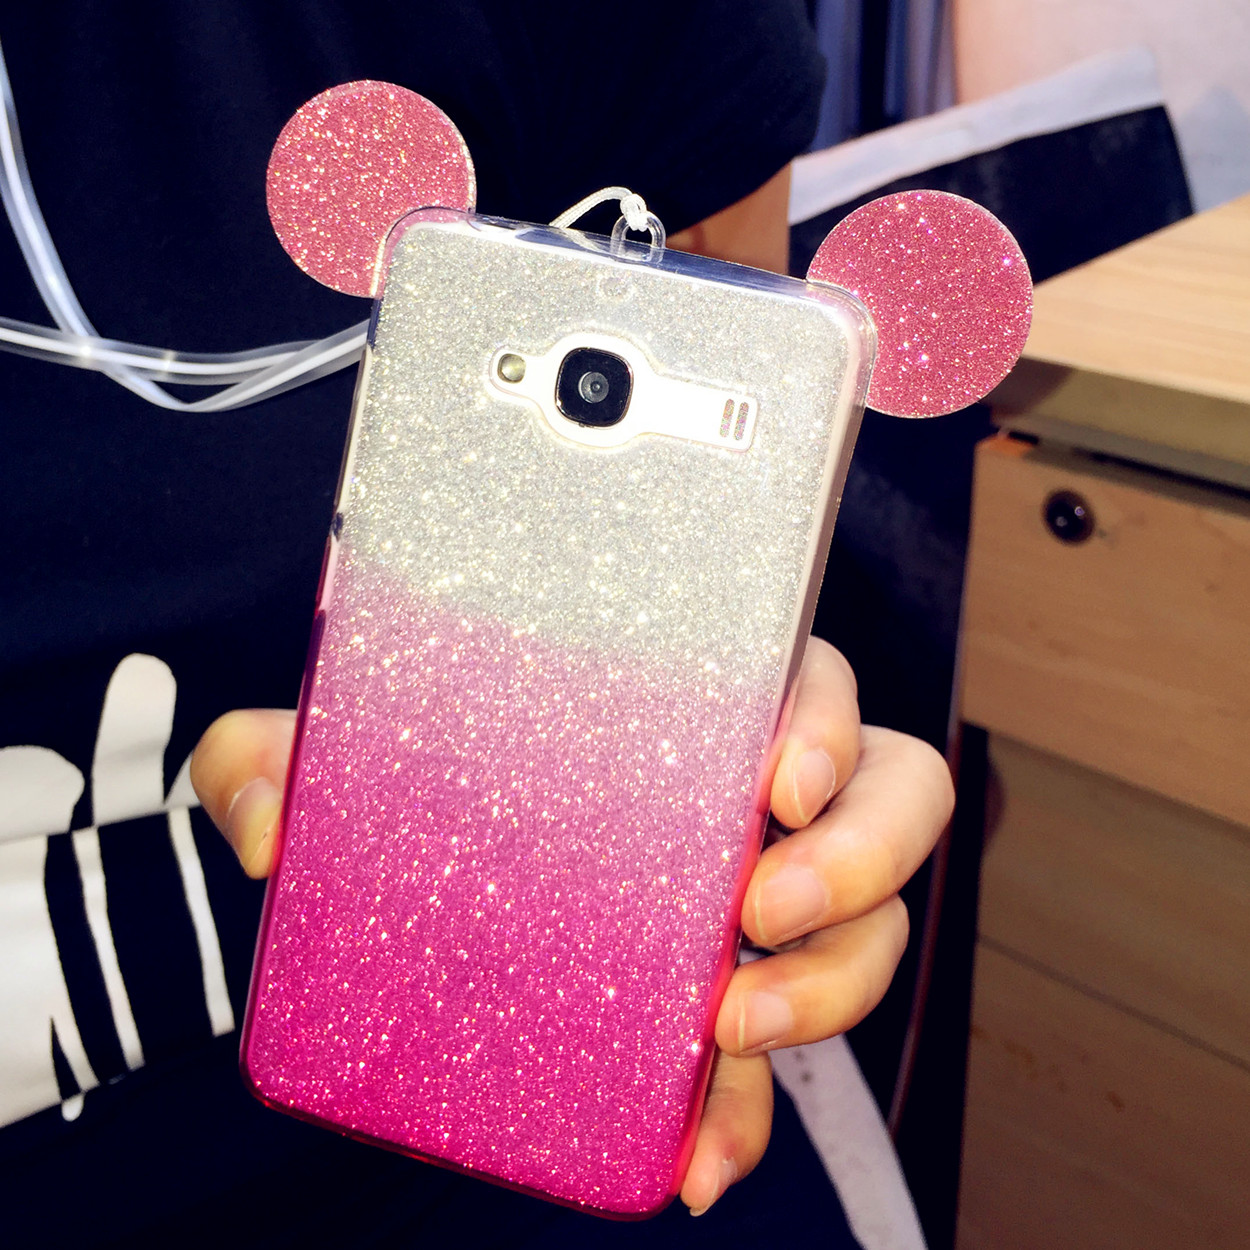 Red rice red rice 2a 2a phone shell mobile phone lanyard mobile phone sets millet red rice red rice 2 hm halter glitter glitter protective shell protective sleeve red rice 2a